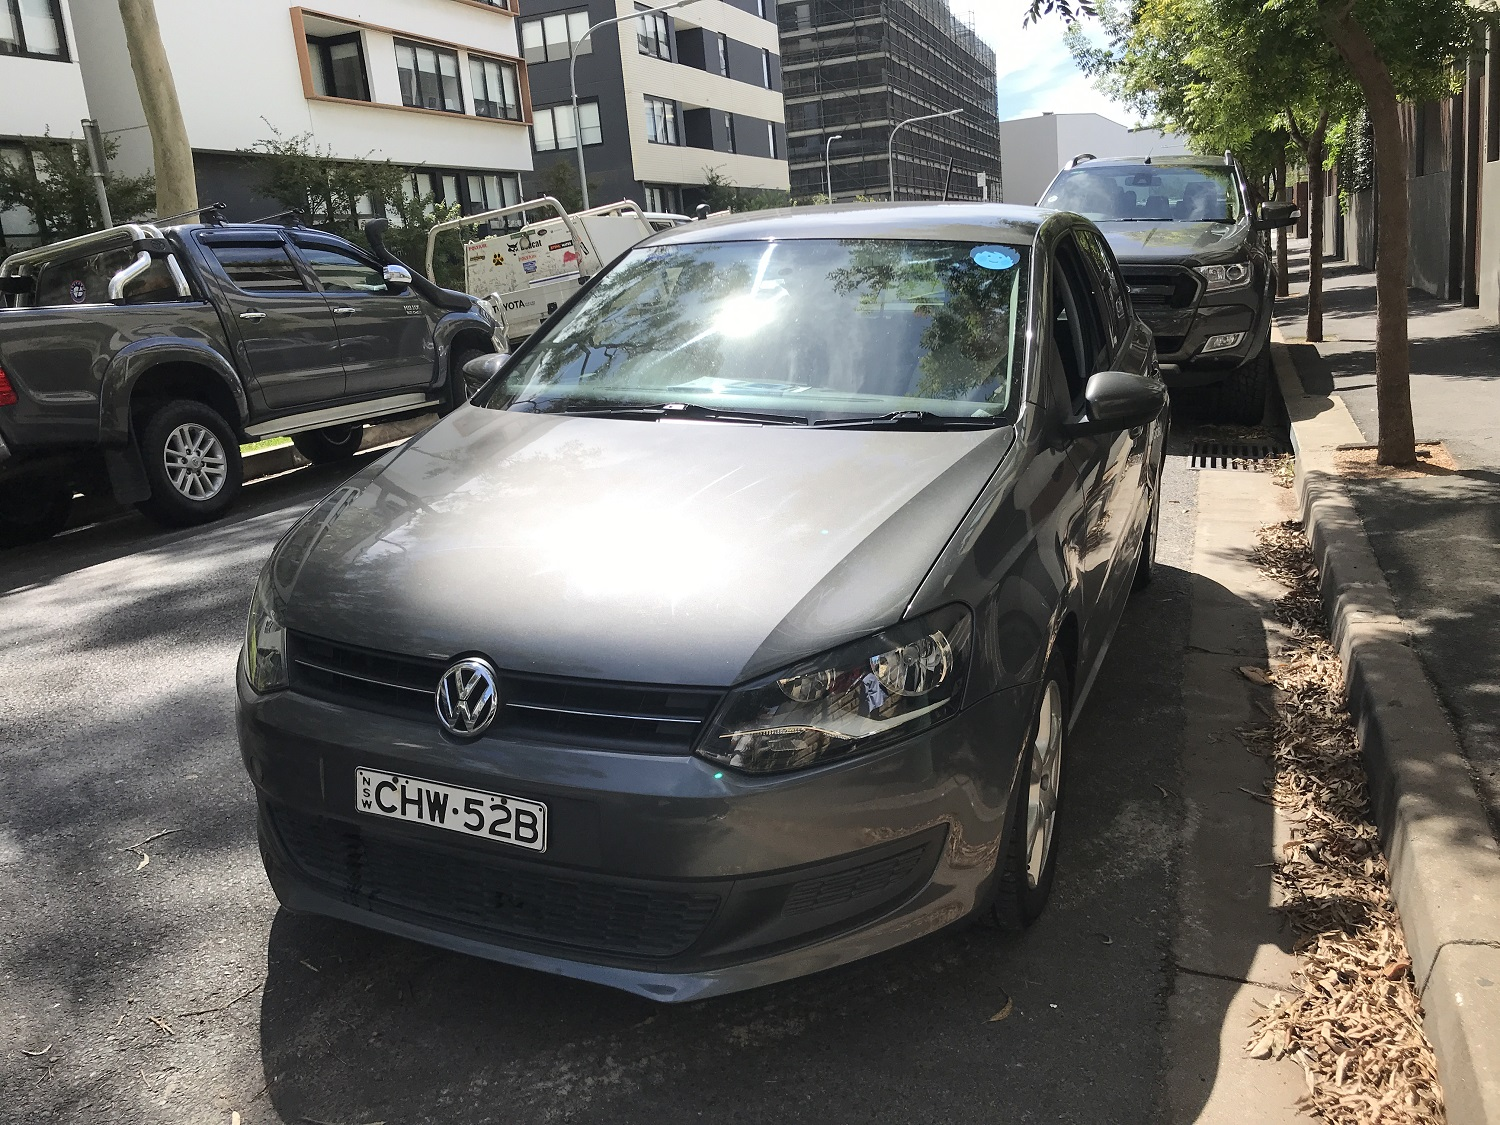 Picture of Hung's 2010 Volkswagen Polo